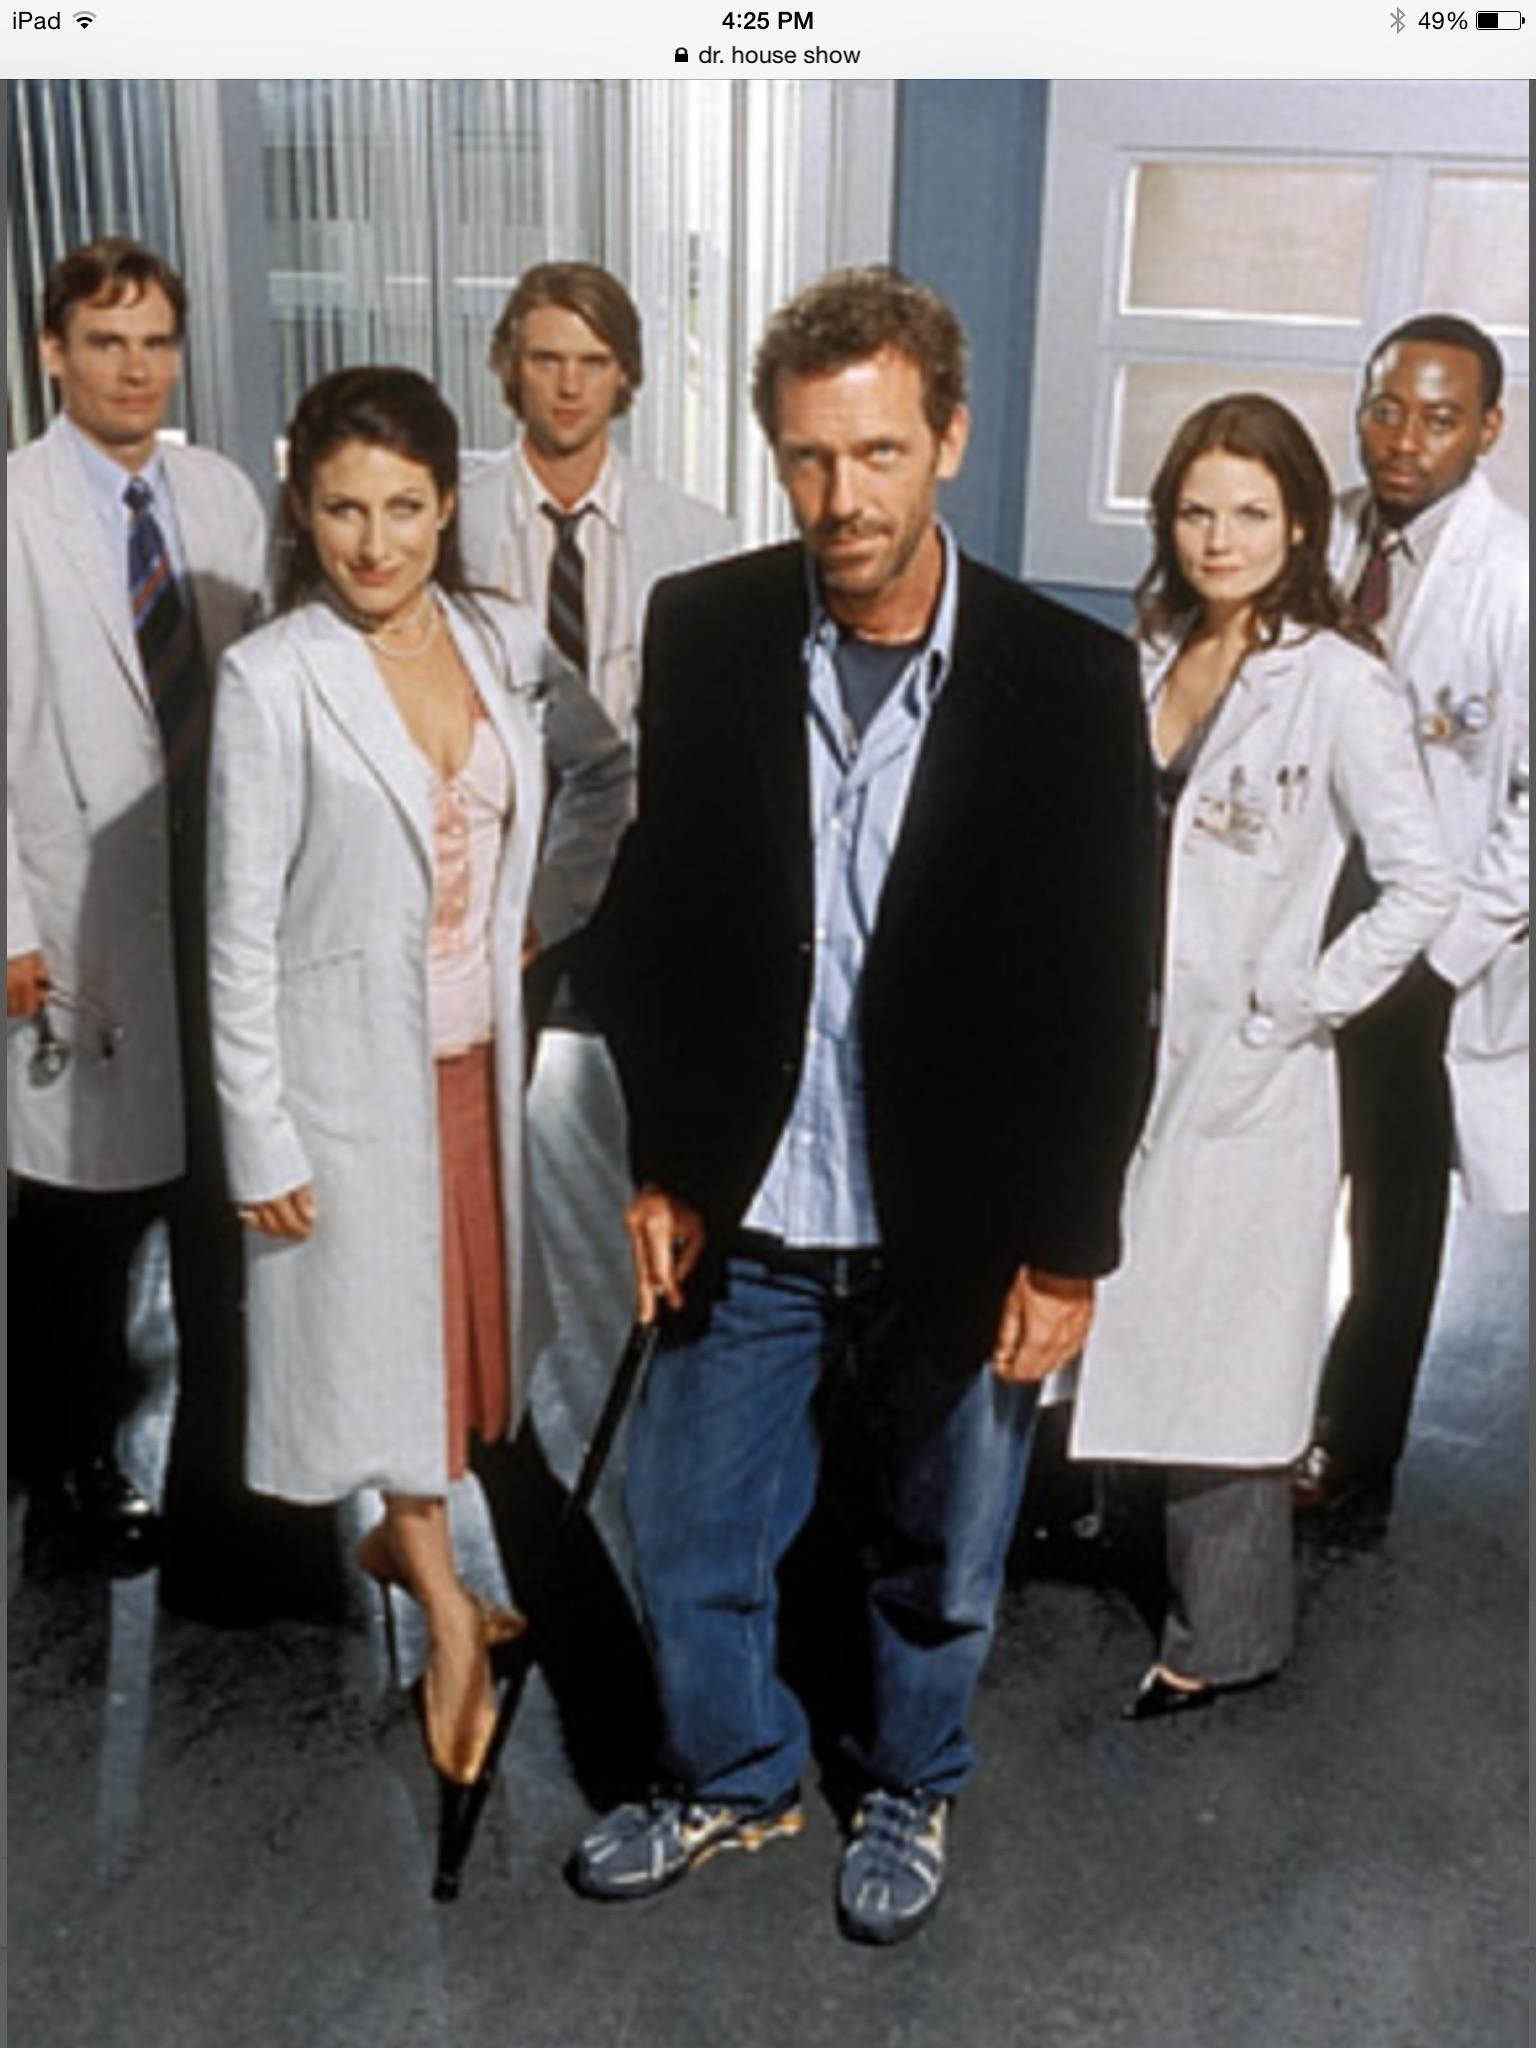 What Dr.house character are you?